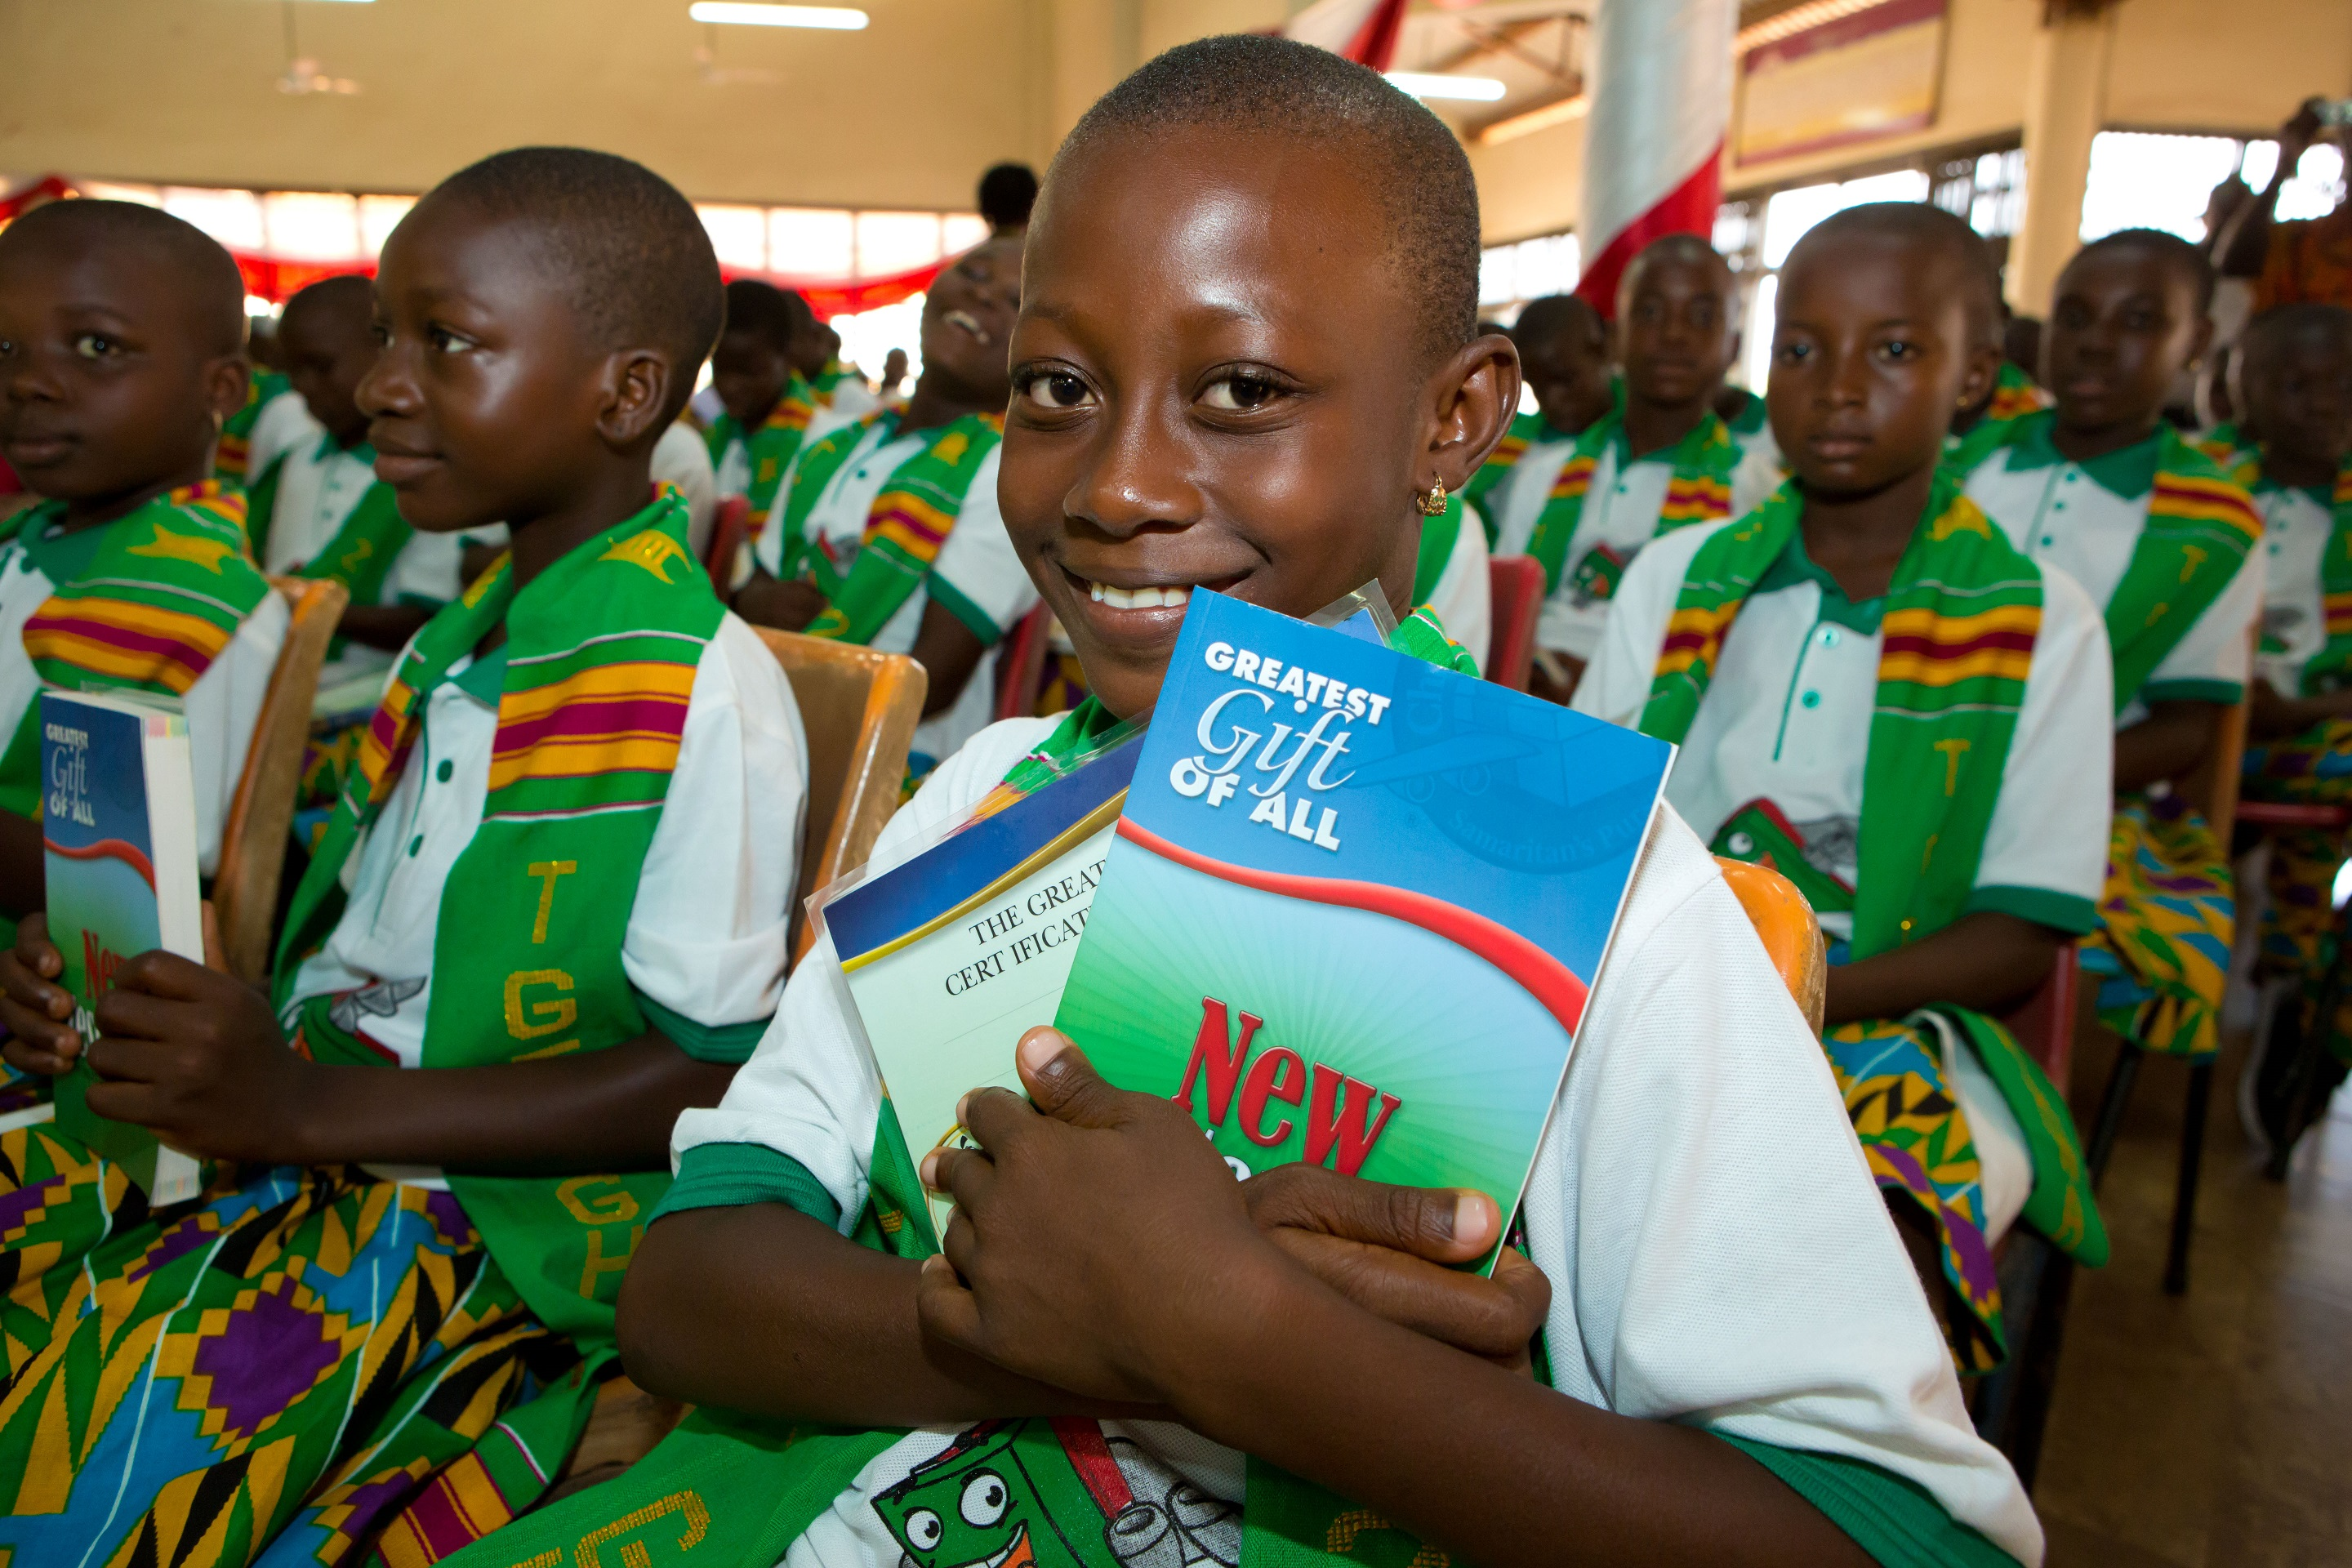 Children in Ghana go through The Greatest Journey after receiving their shoebox gifts